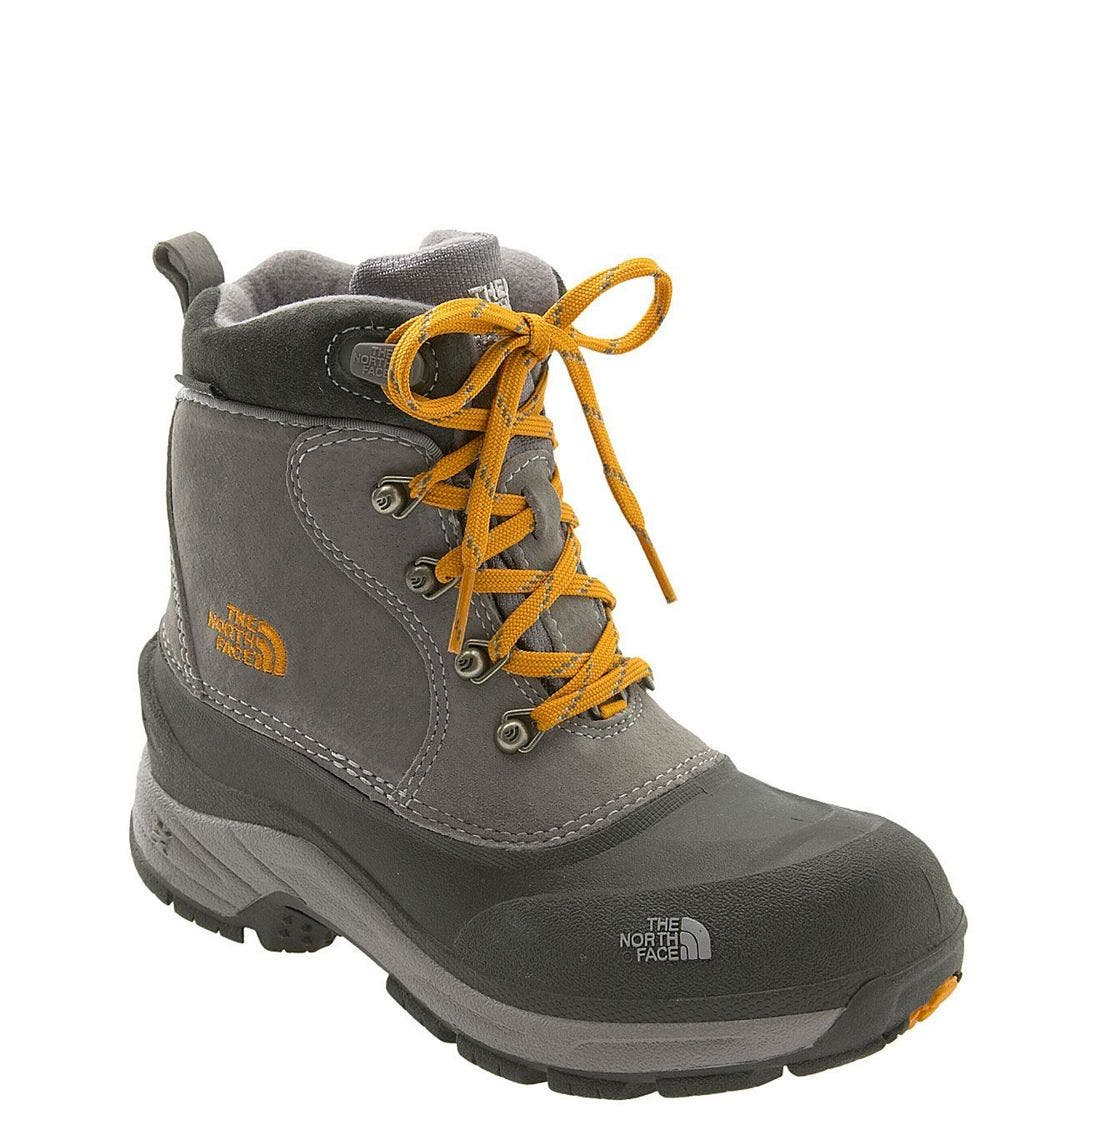 Alternate Image 1 Selected - The North Face 'Chilkats' Boot (Toddler, Little Kid & Big Kid)